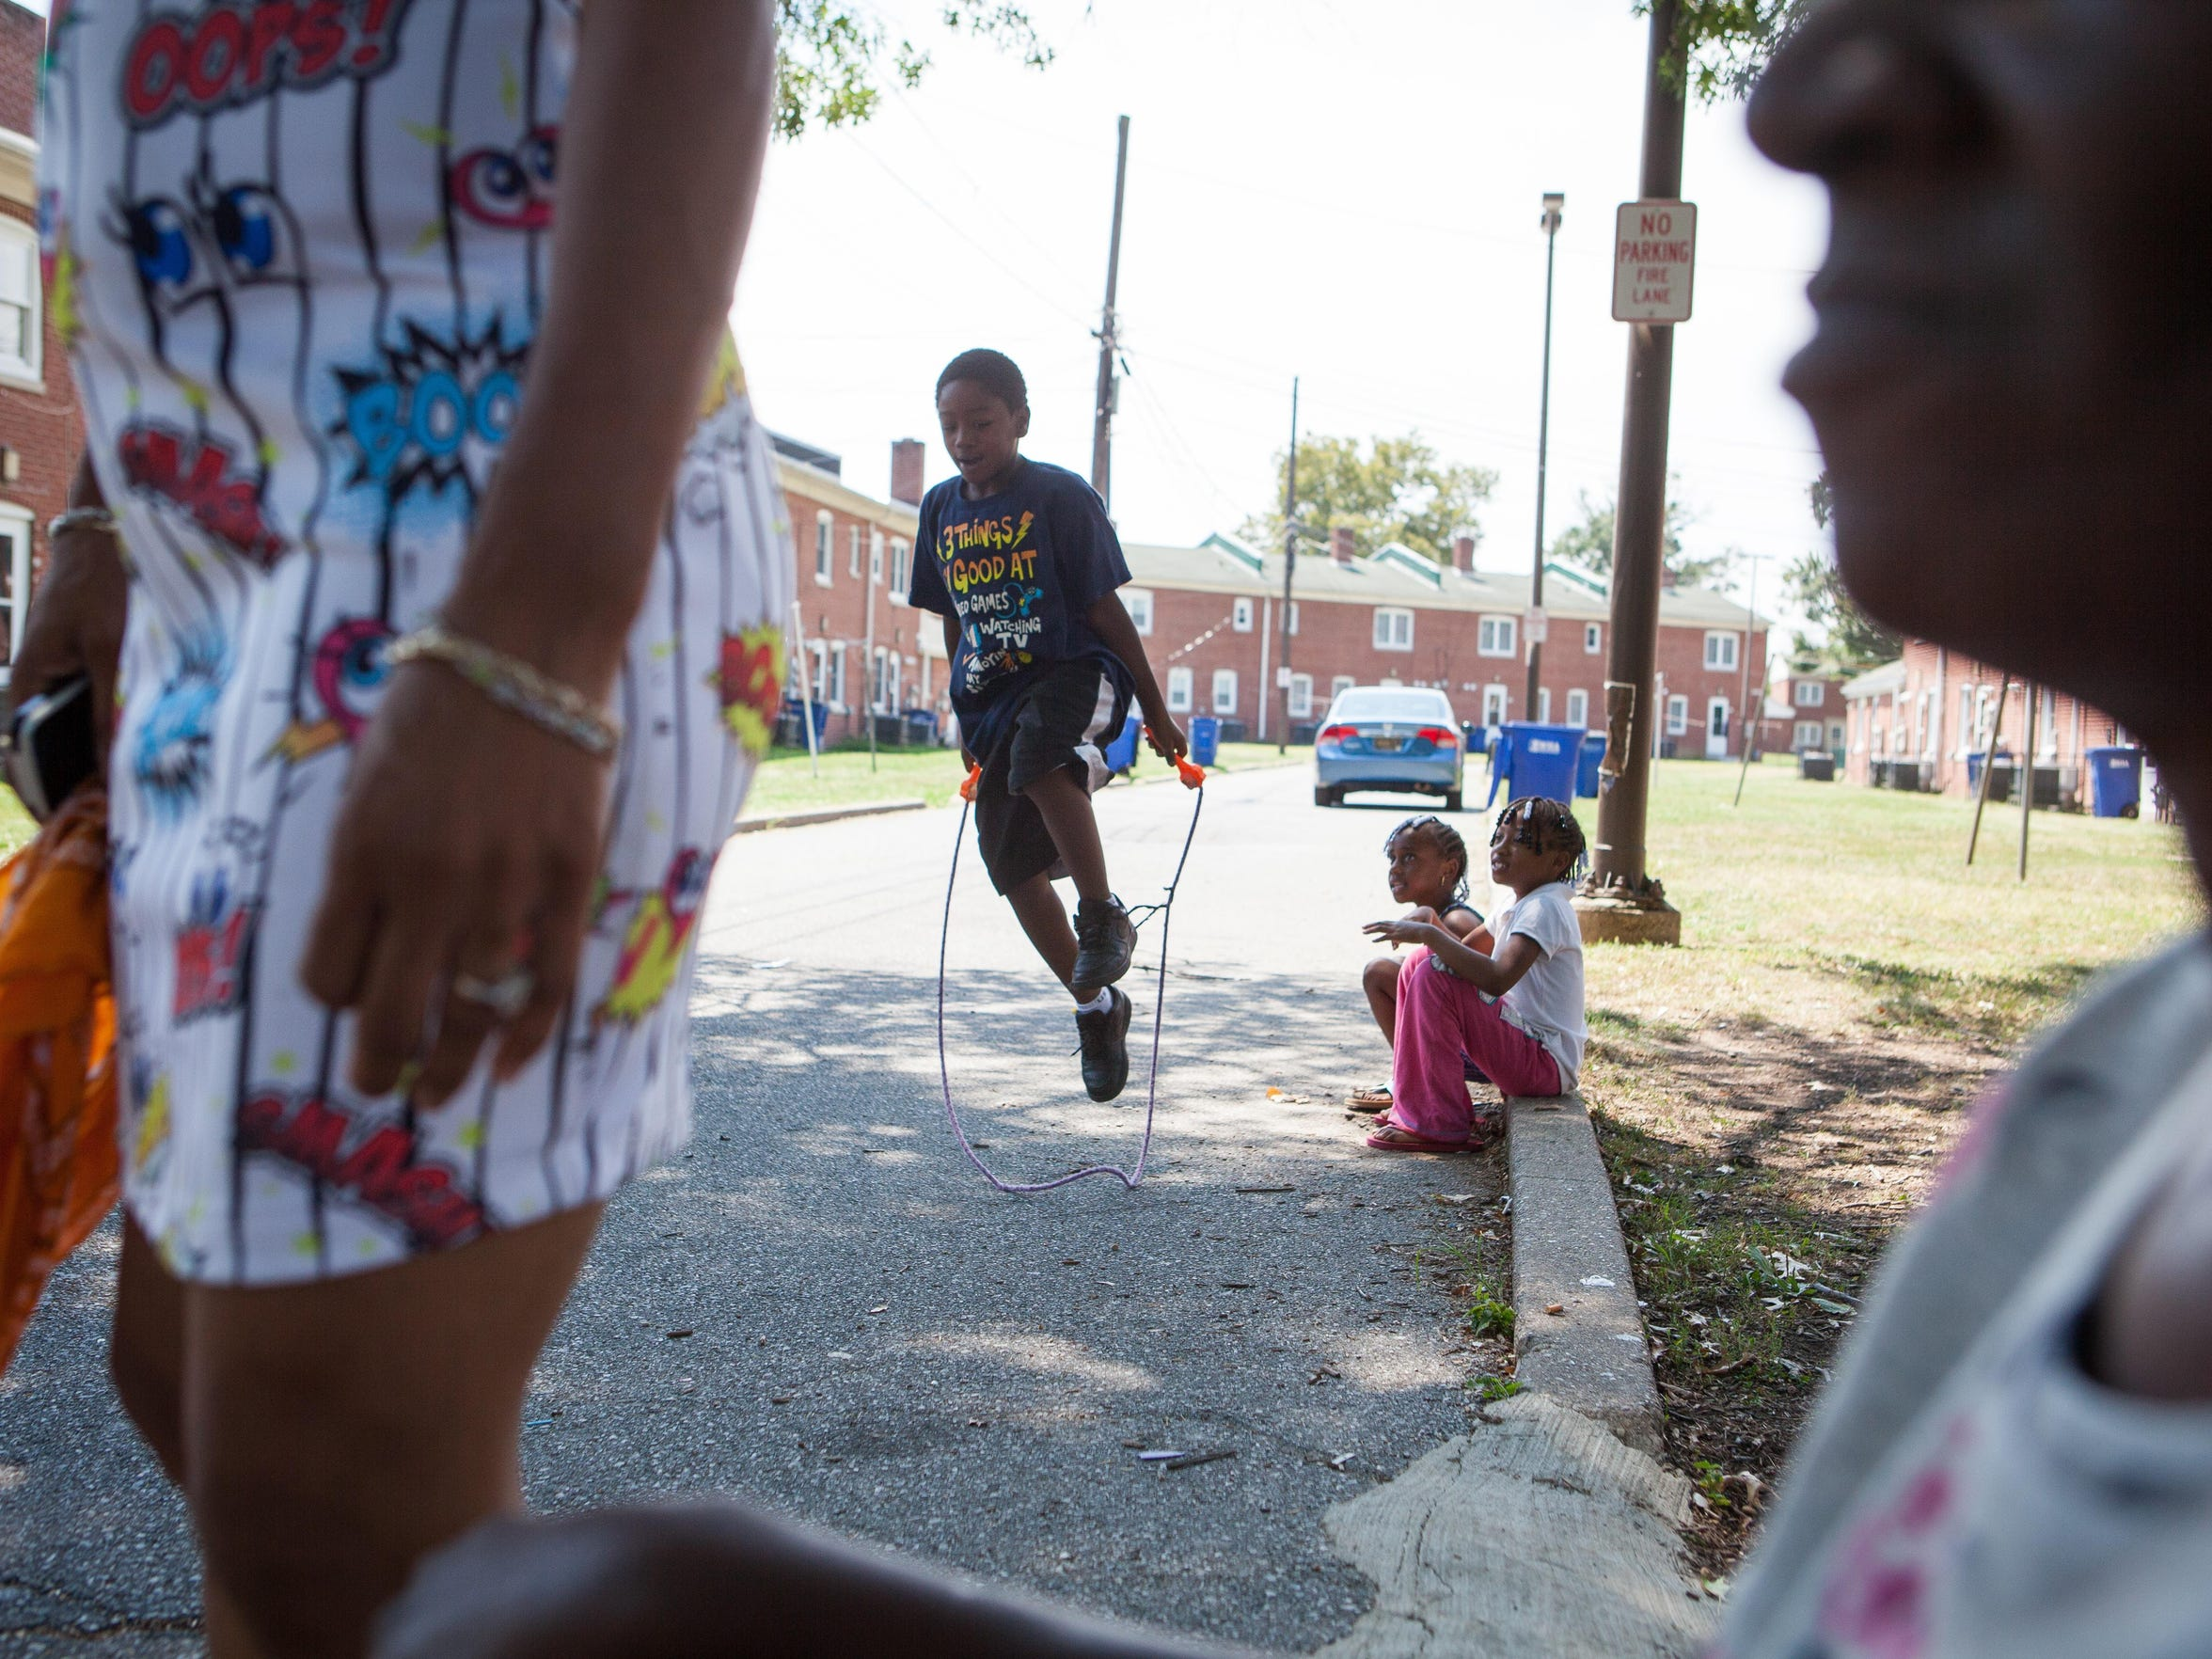 Kids play outside near where a 10-year-old boy was